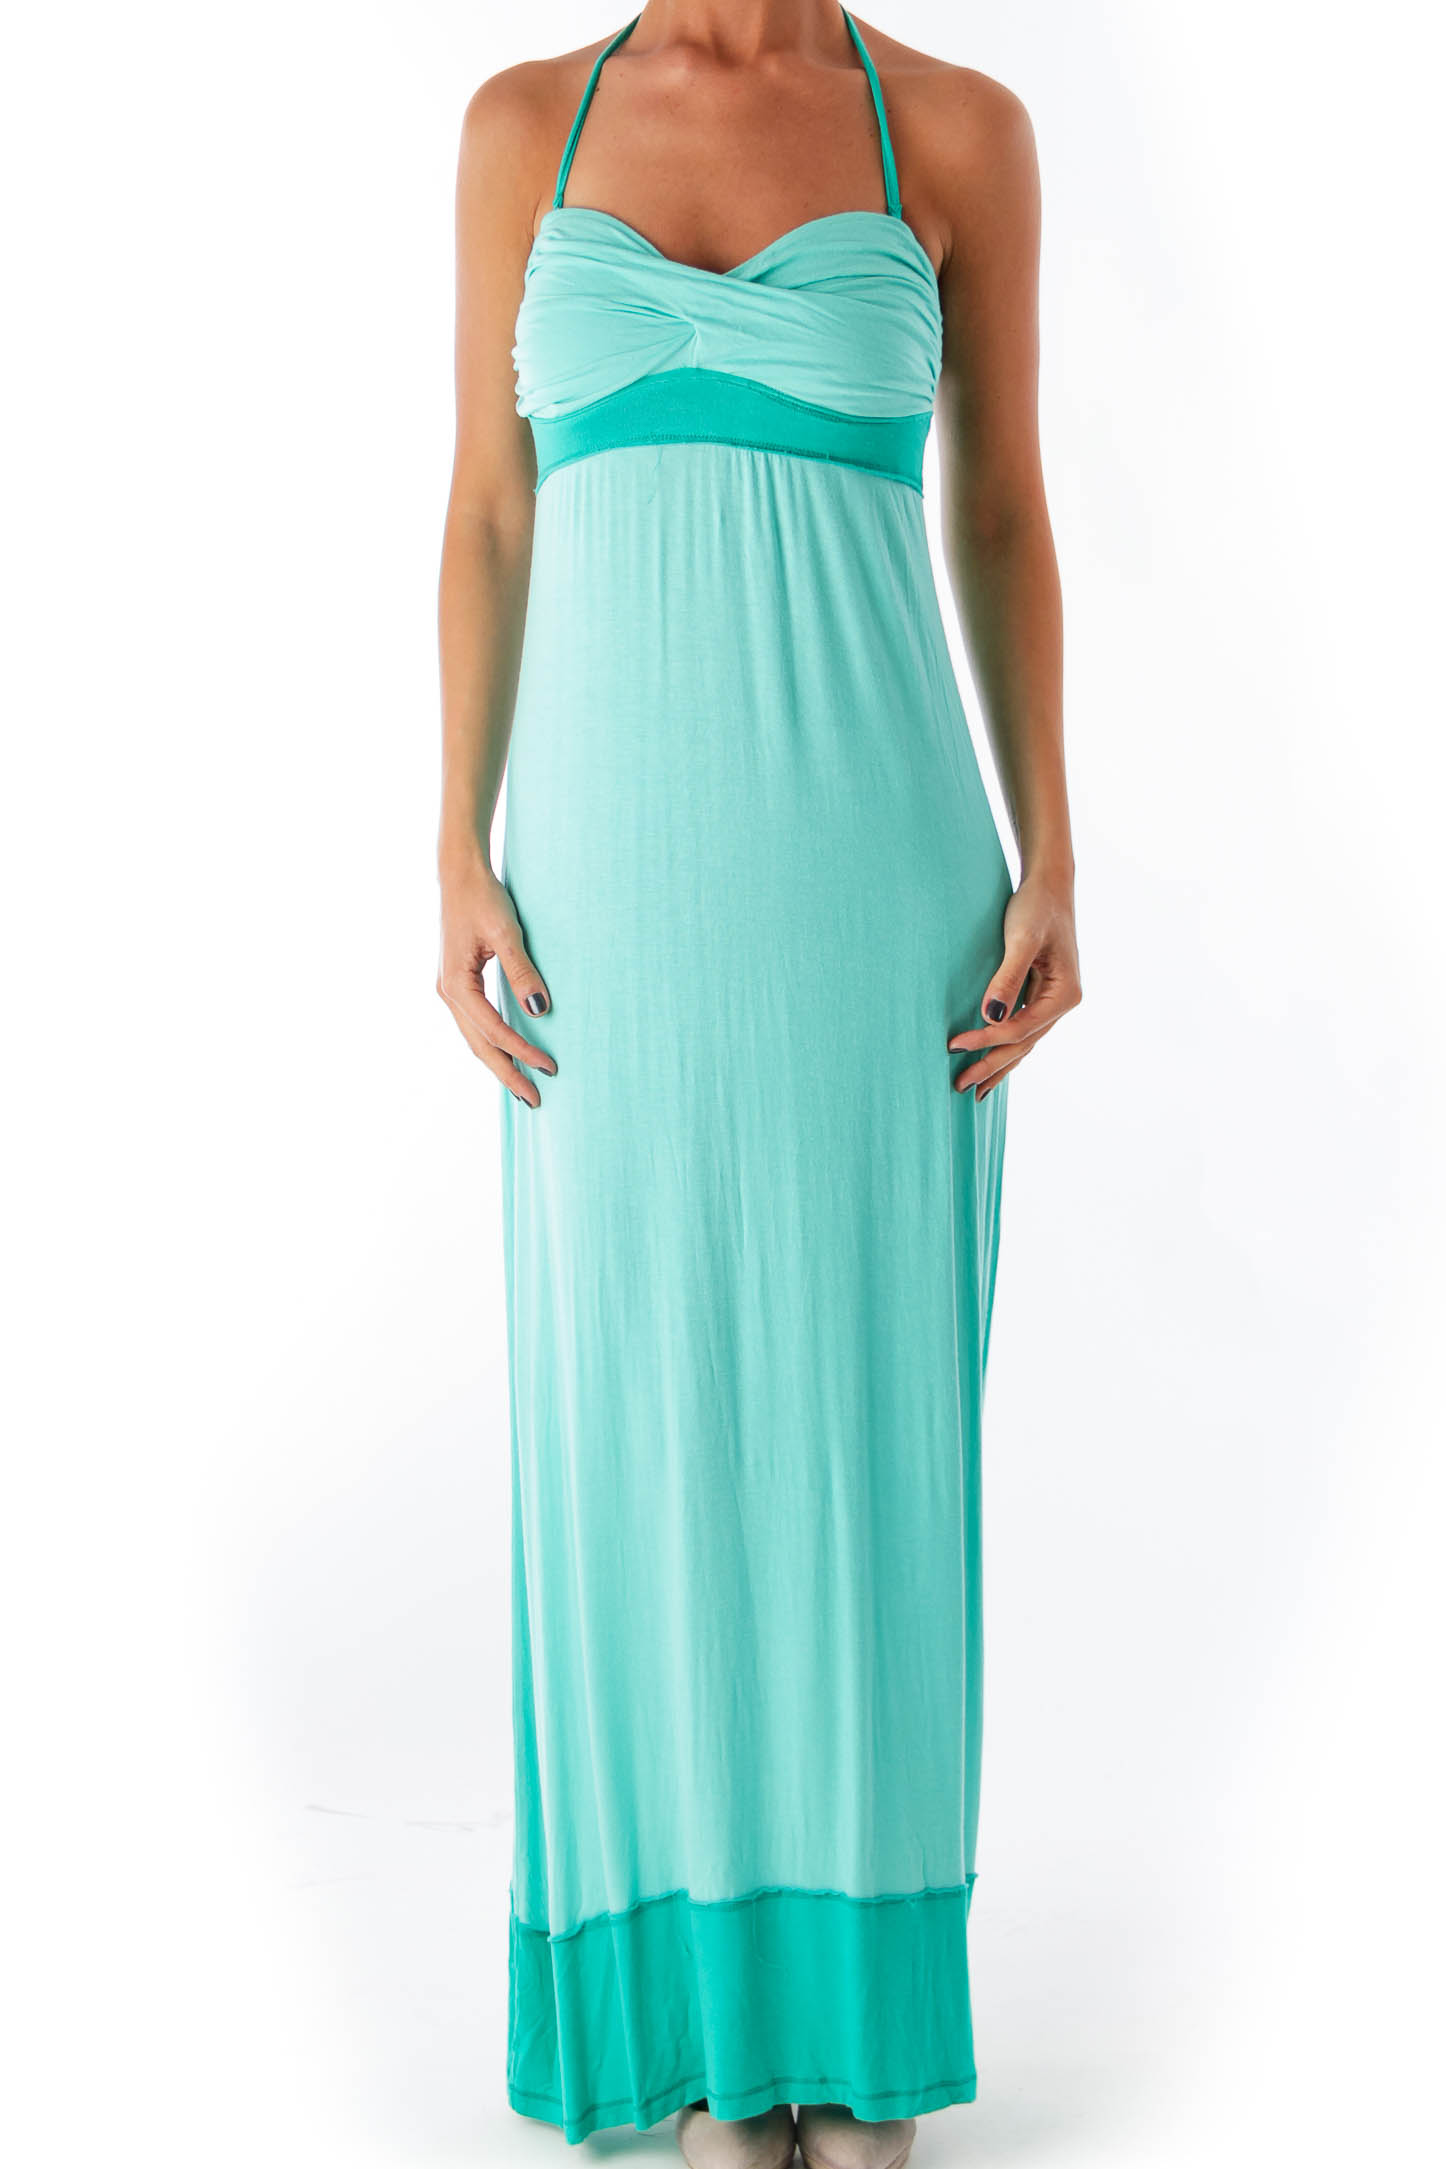 Green Strapless Long Dress